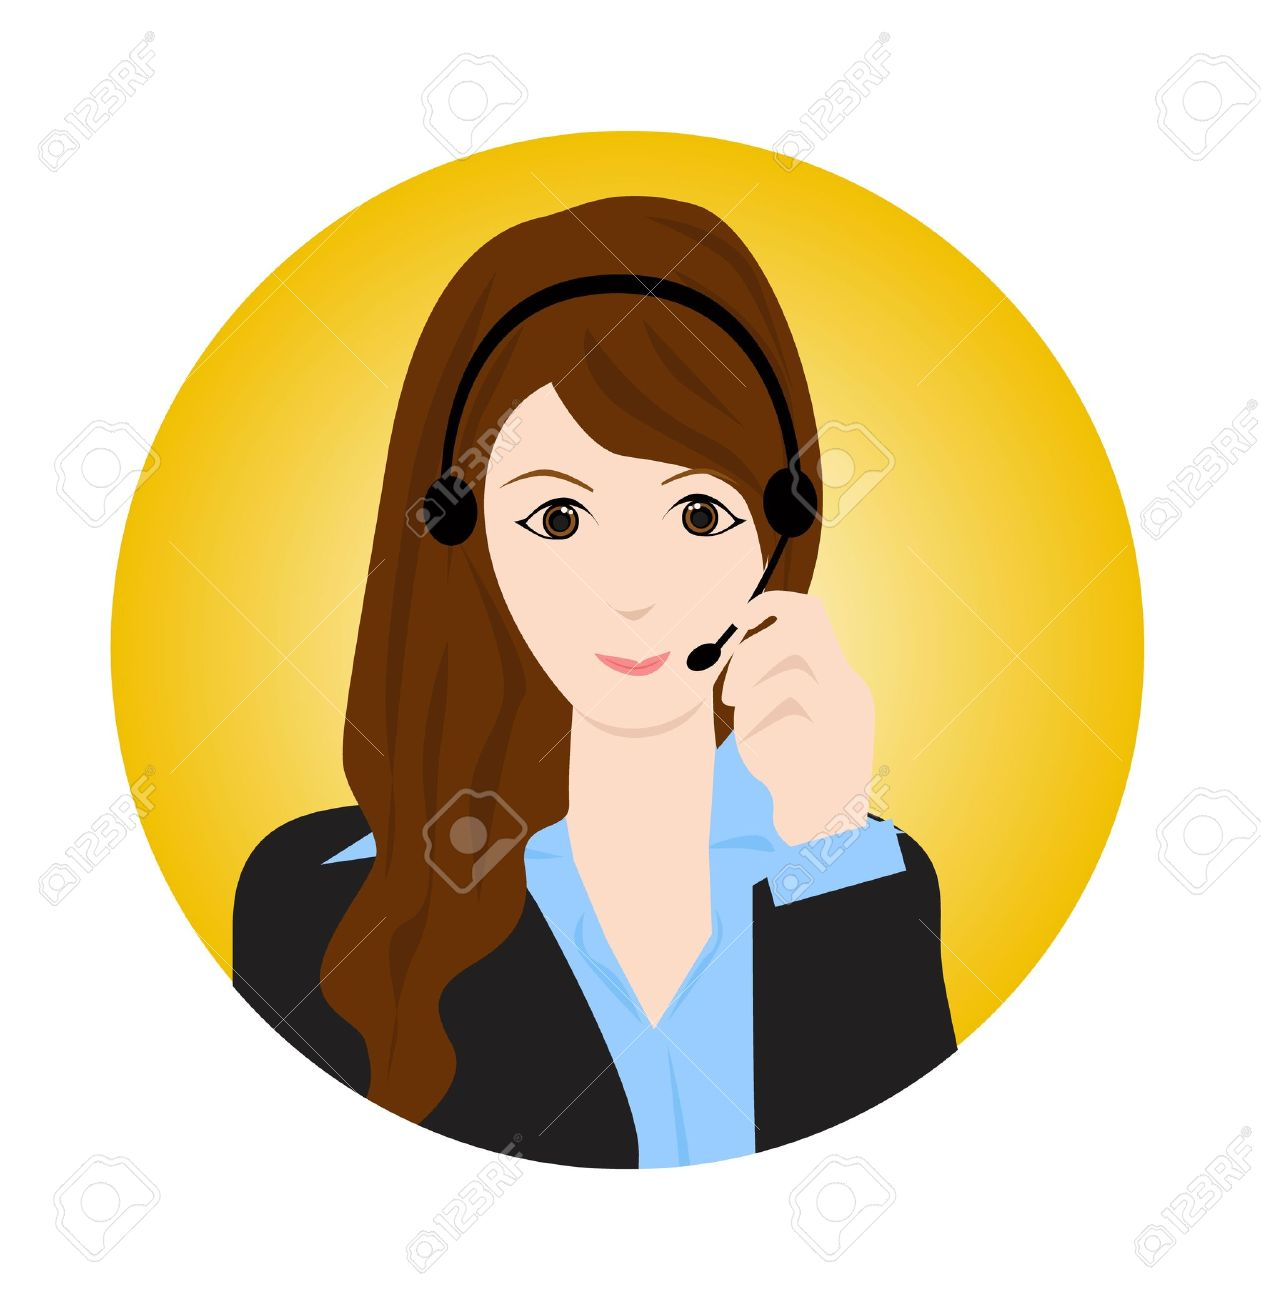 customer service agent clipart 1 clipart station rh clipartstation com customer service clip art free customer service clip art images free